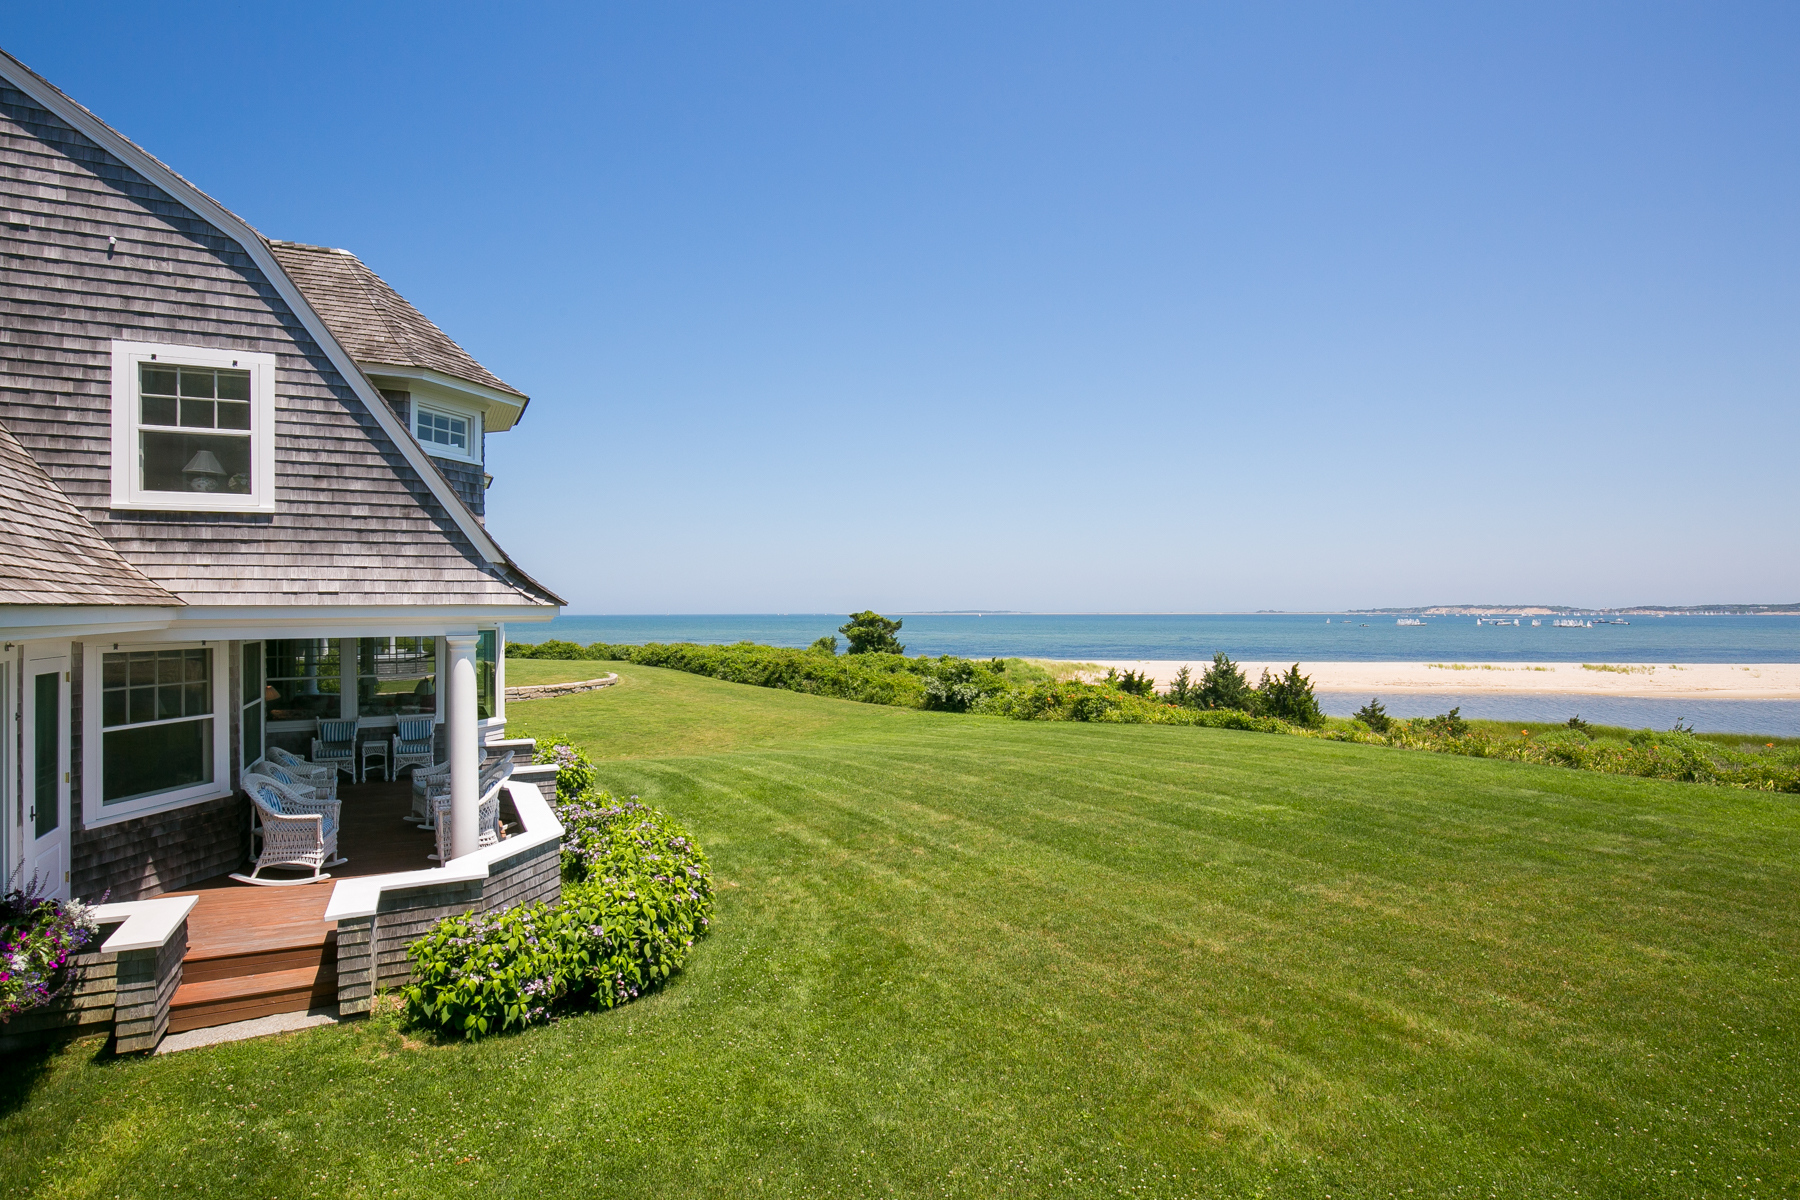 단독 가정 주택 용 매매 에 Edgartown Harbor Waterfront Estate 7 Starbuck Neck Road Edgartown, 매사추세츠, 02539 미국